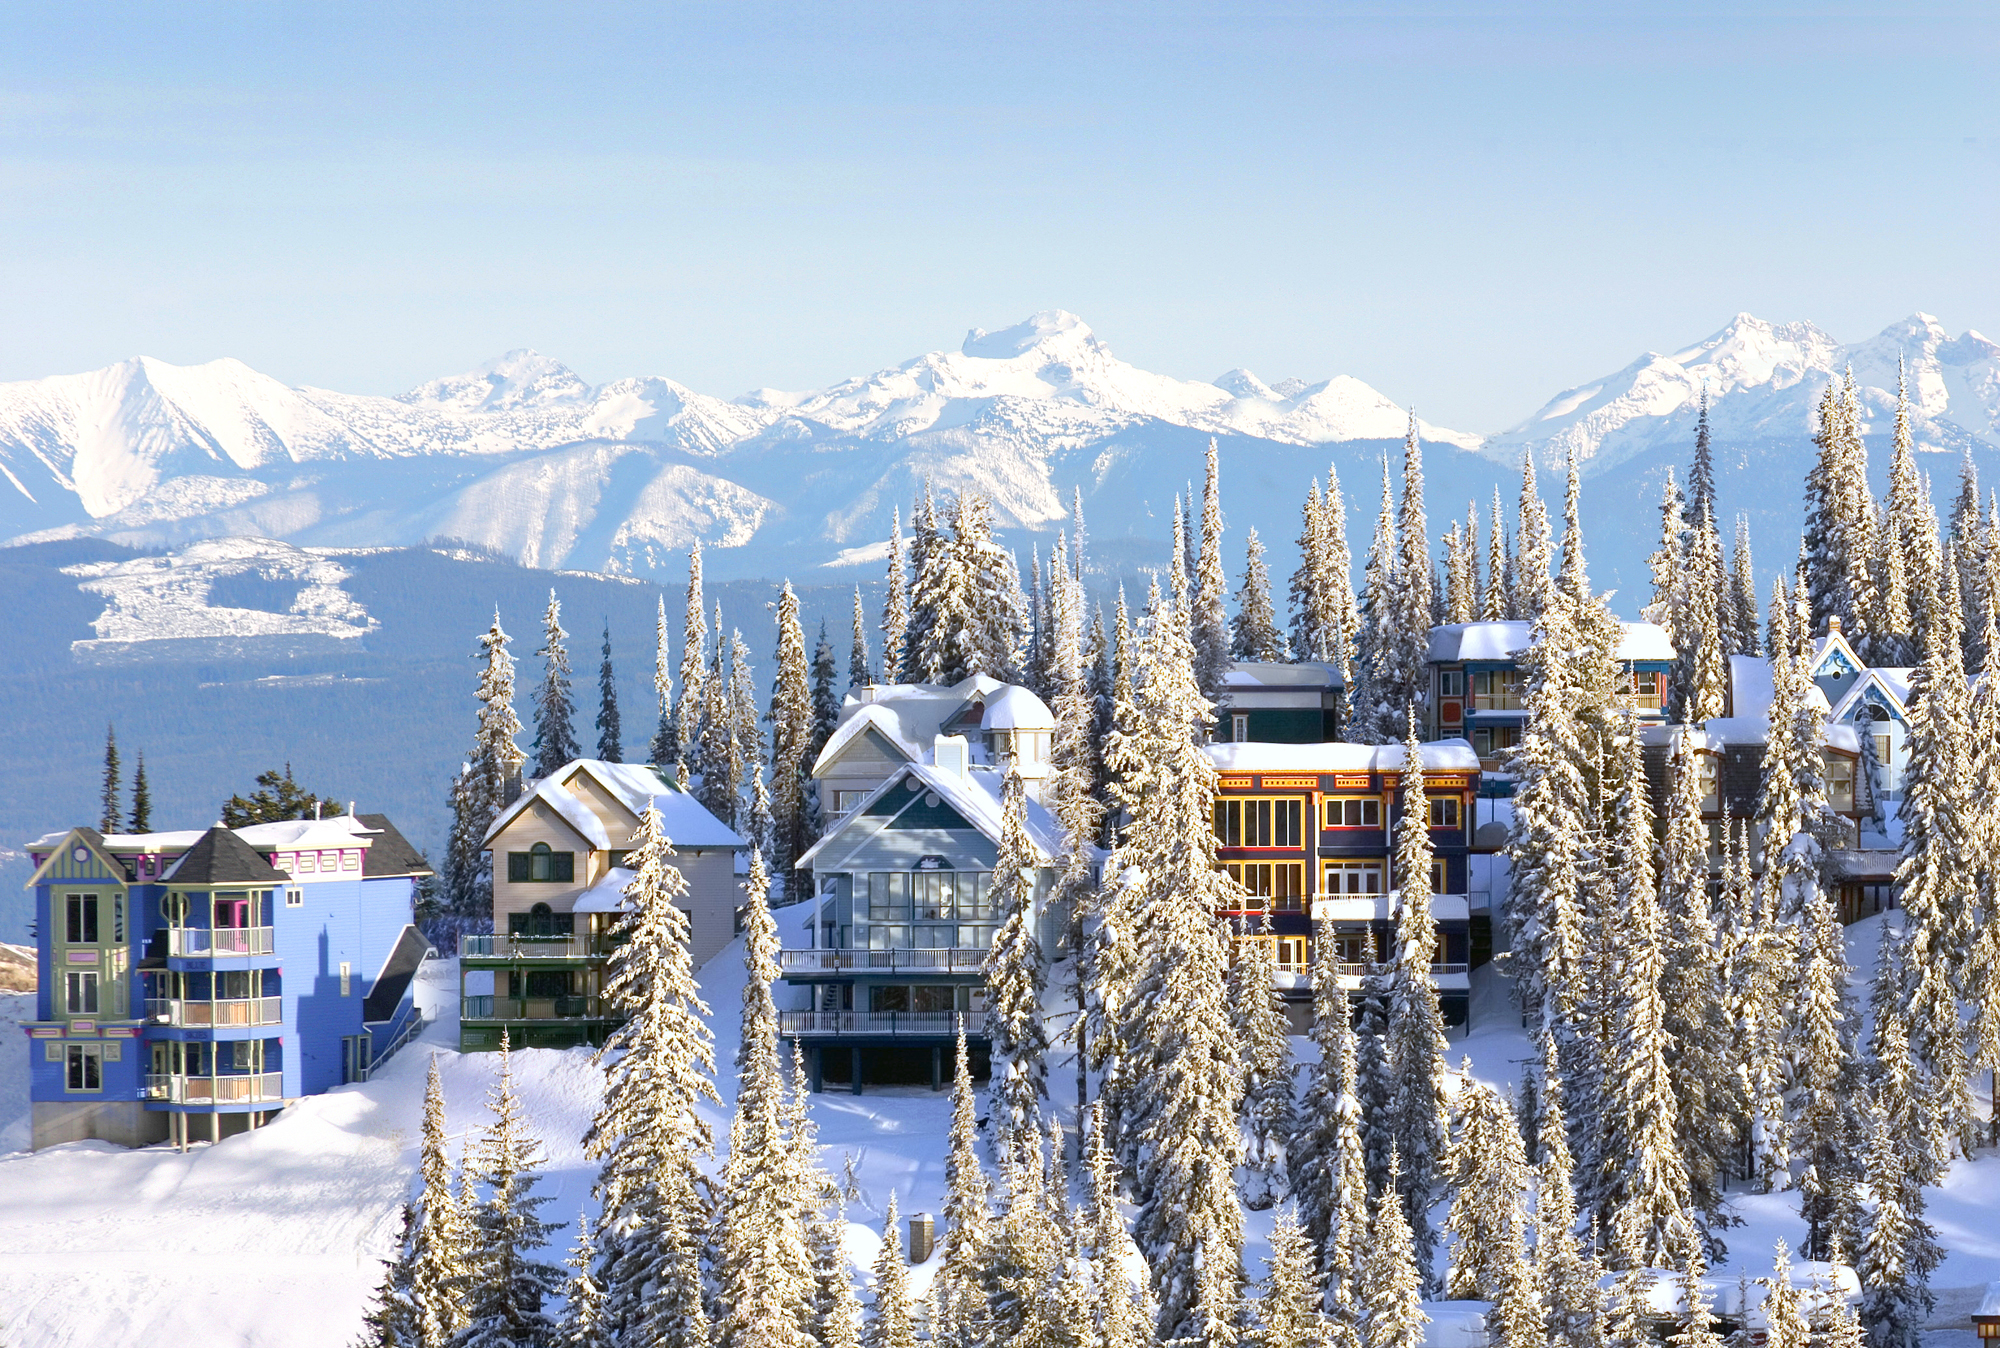 best heli skiing in bc with New Heliskiing Program At Silver Star Mountain Resort Kicks Off The Season With A Grand Opening Ac Modation Package on Blue River besides Powder Skiing Wallpaper additionally Whistlers Best Attractions Activities likewise About Whistler besides Canada.